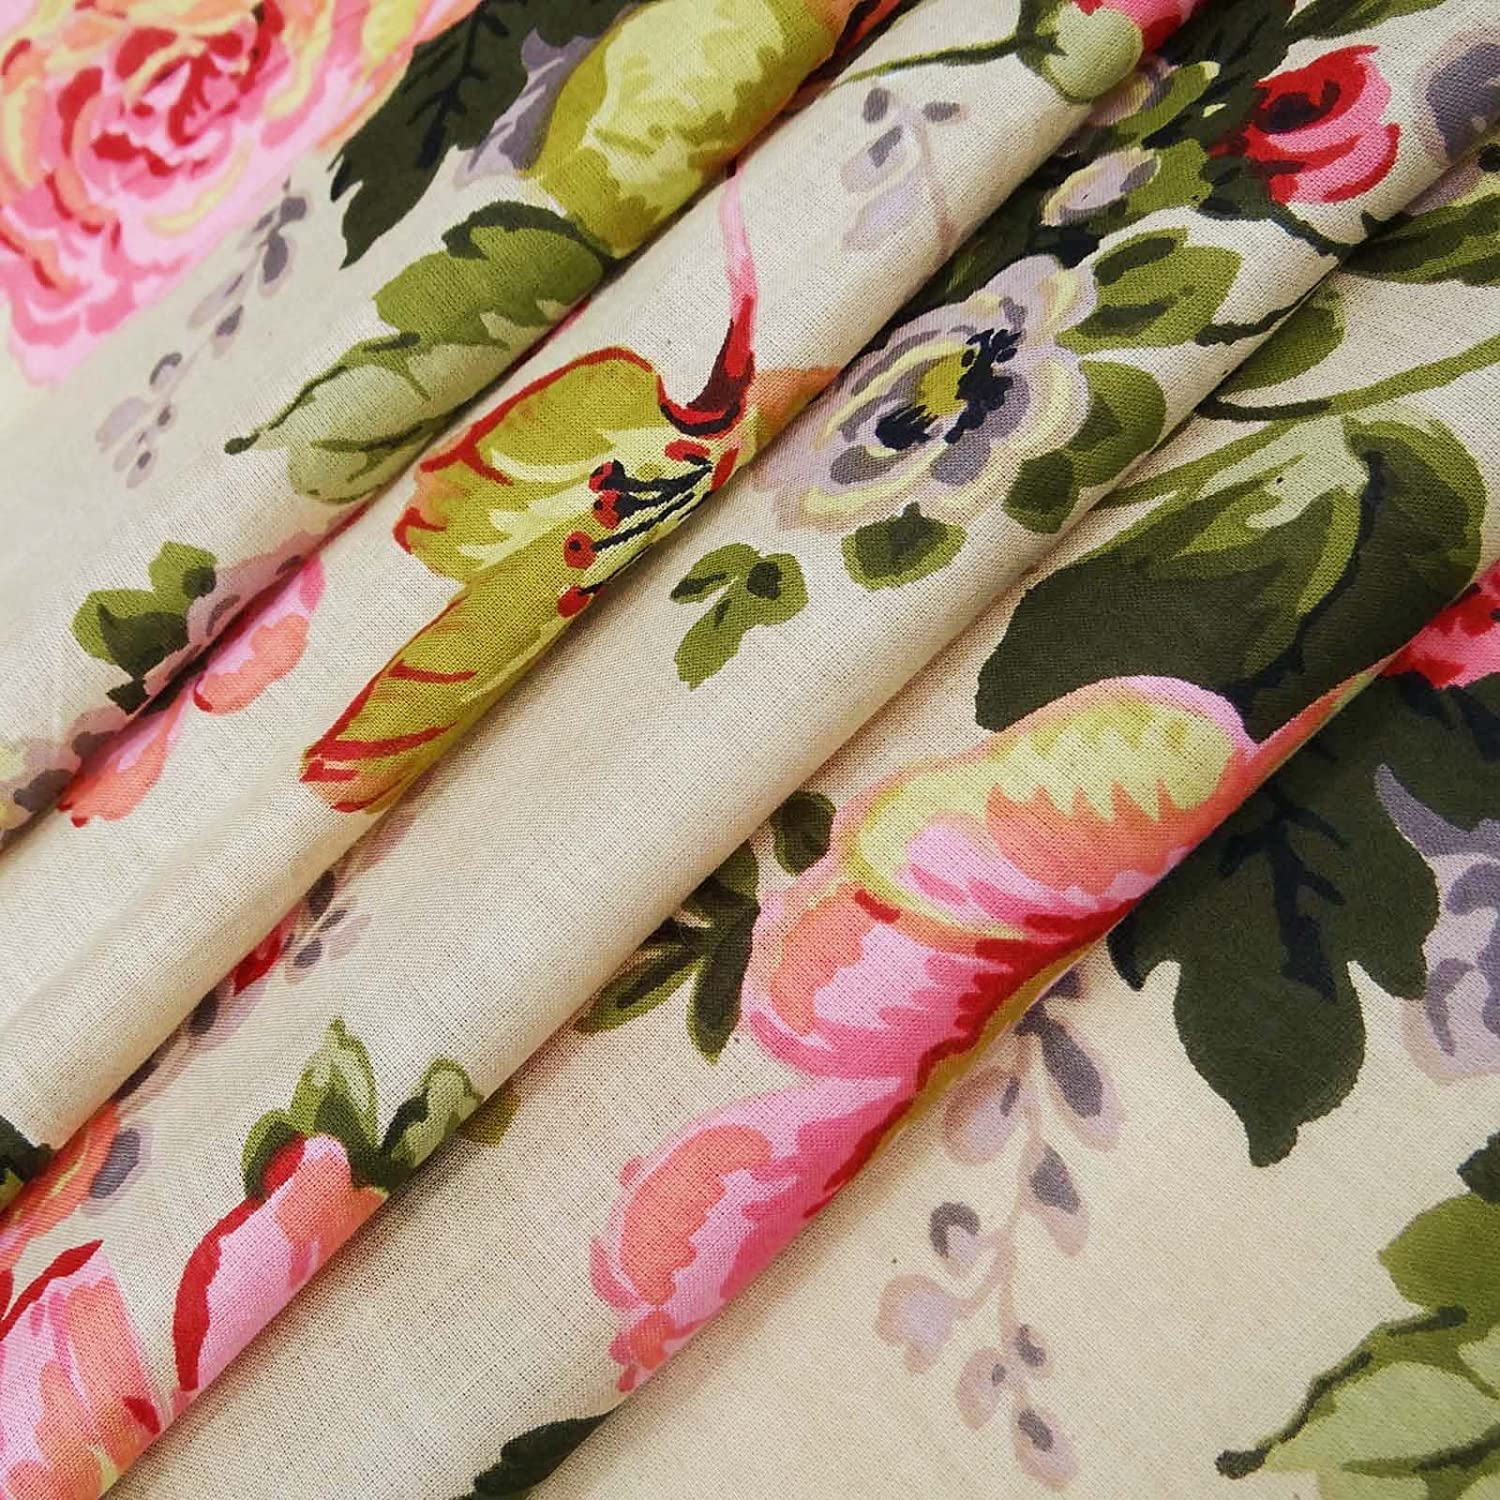 Craft Dressmaking Fabric Beige Fabric Floral Print Quilt Material 43 Inch Cotton Fabric By The Yard ZBC9153C